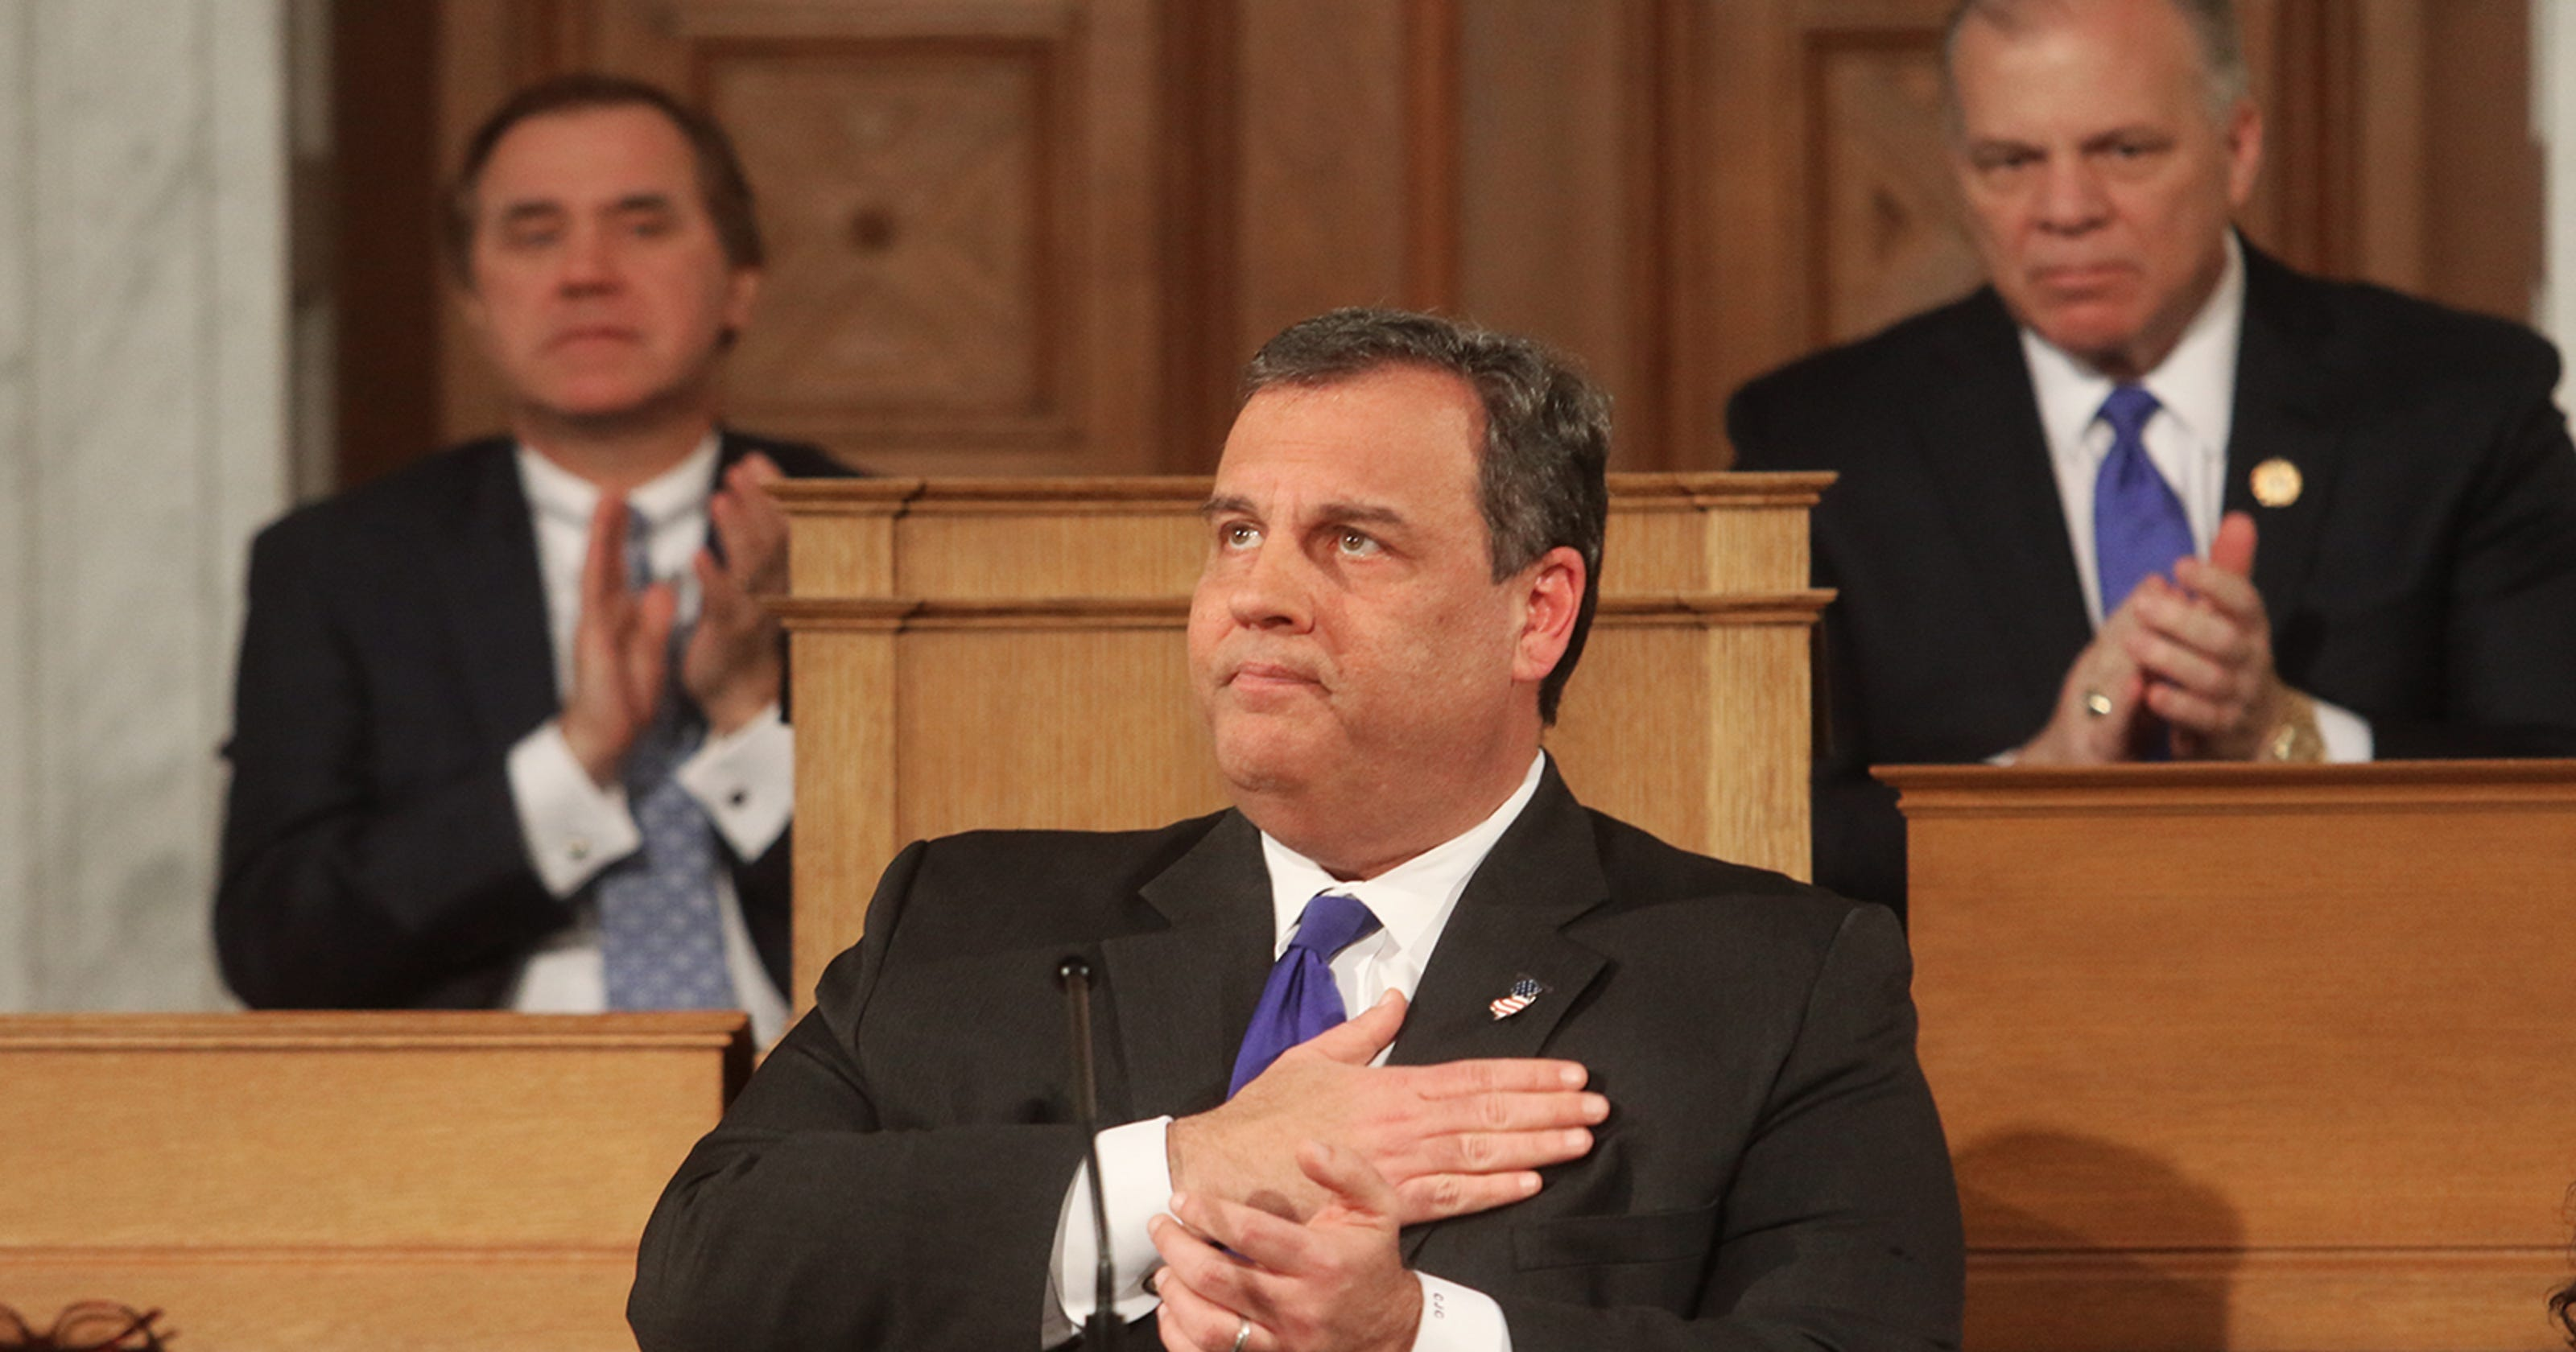 Chris Christie opens law firm, Rudy Giuliani says he sent clients